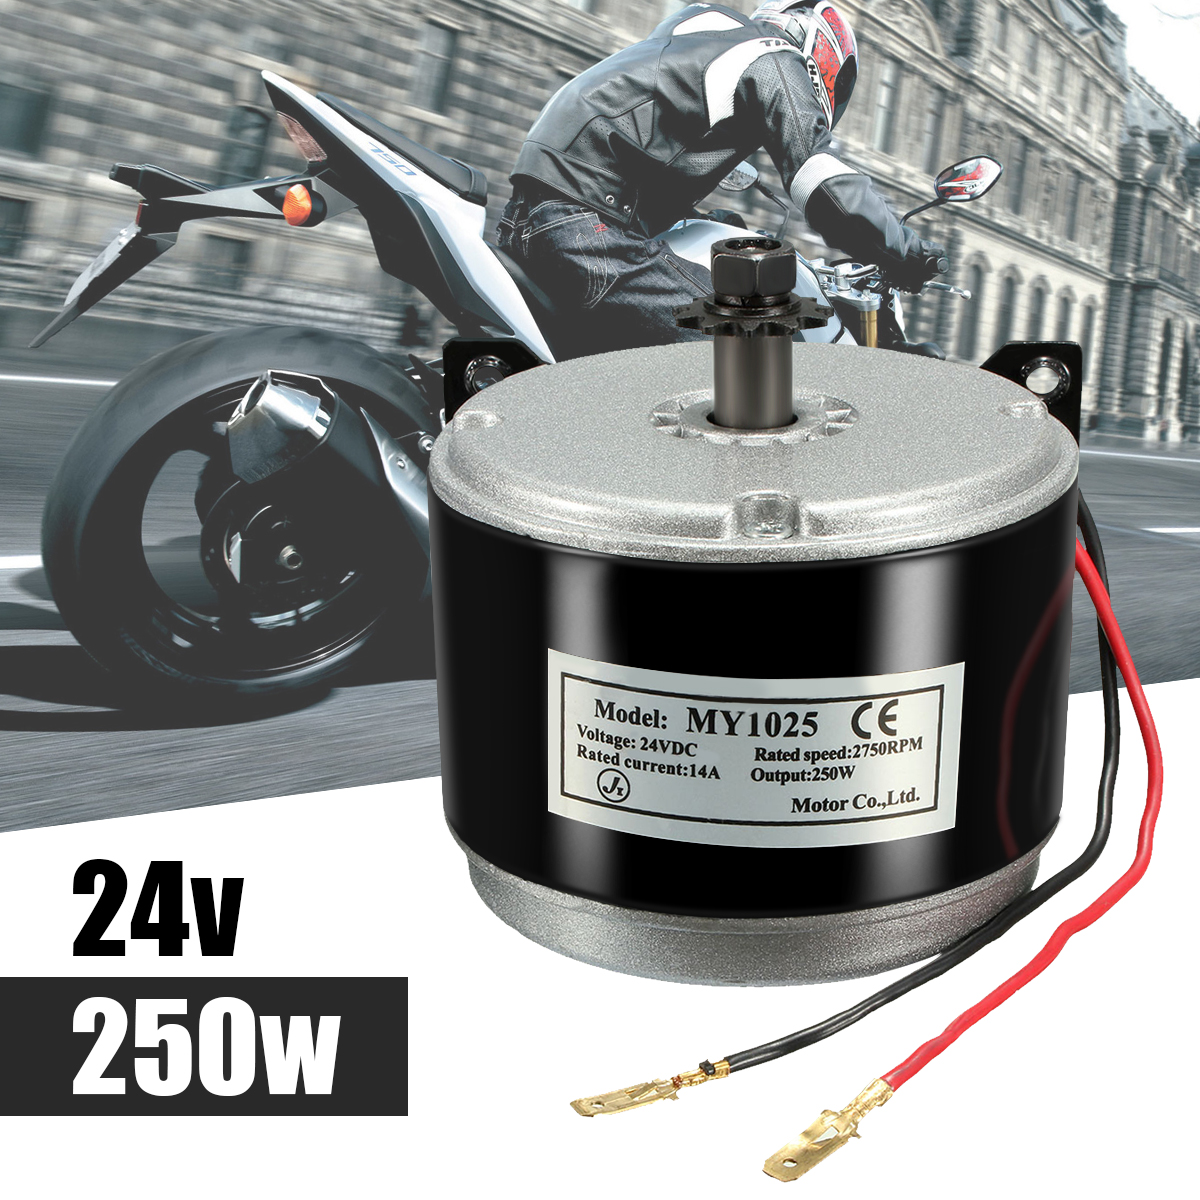 US $29 99 5% OFF|MY1025 24V 250W Electric Motor Brushed 2750RPM 2 Wired  Chain For E Bike Scooter-in Motor Mounts from Automobiles & Motorcycles on